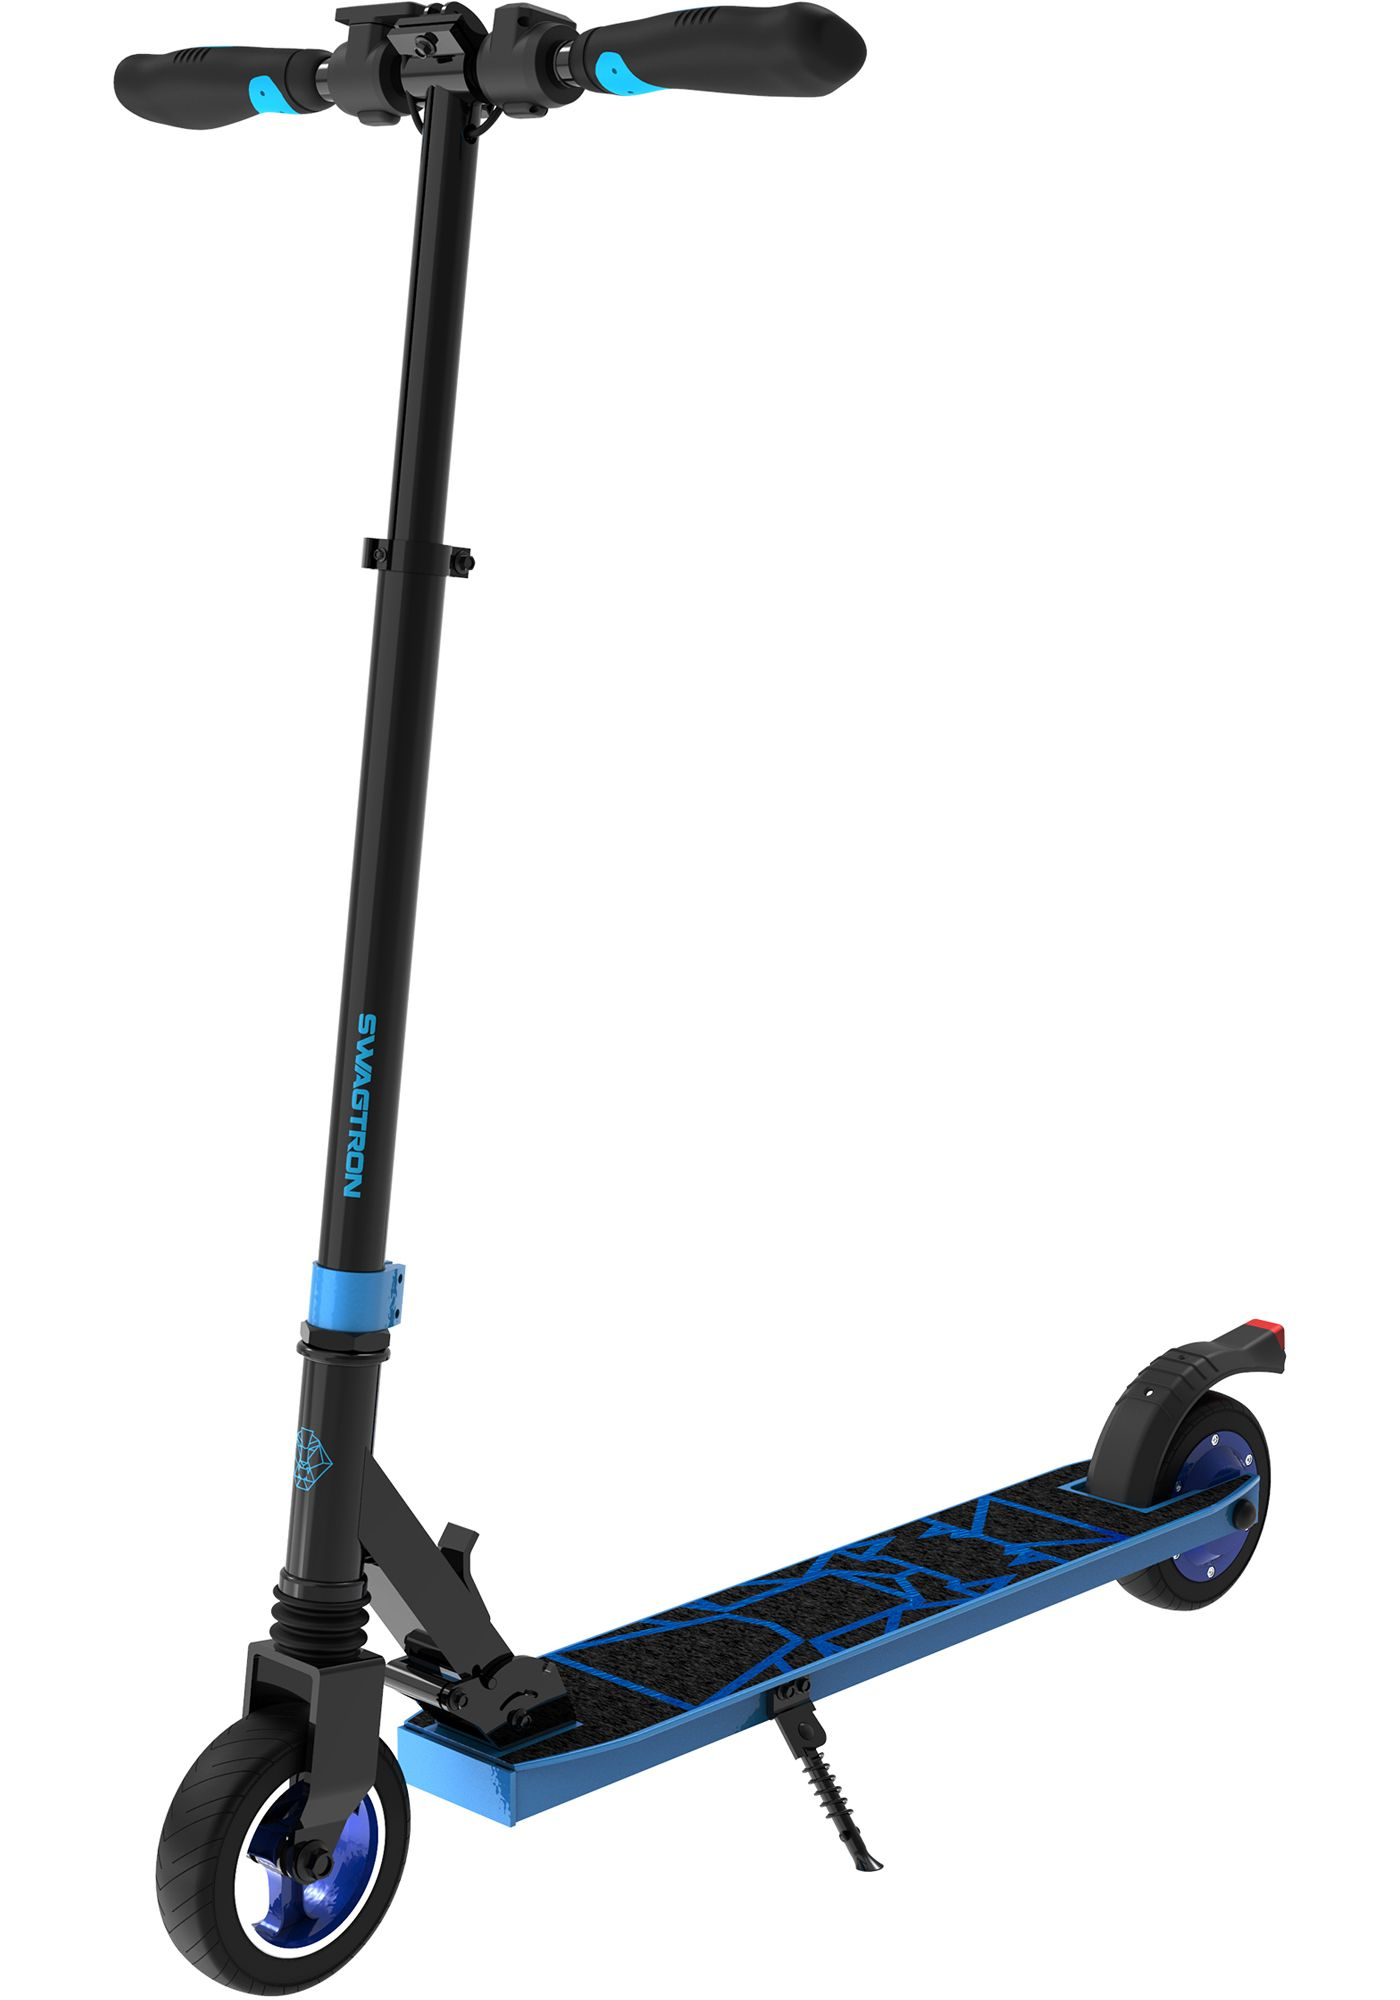 SWAGTRON Swagger 8 Electric Scooter